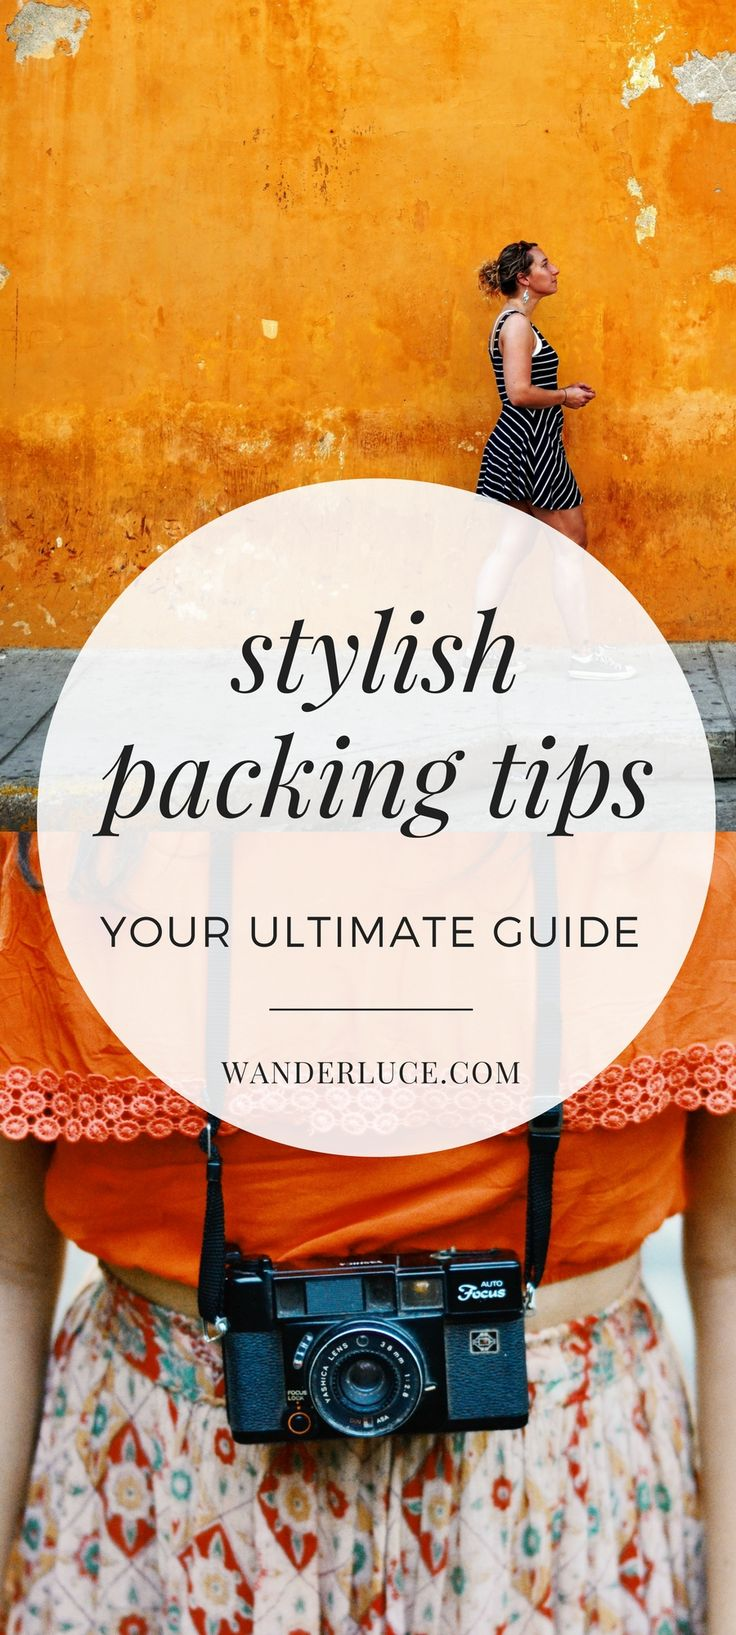 Struggling with over-packing, under-packing or just plain mis-packing? This guide will help you become a seriously stylish packing aficionado!